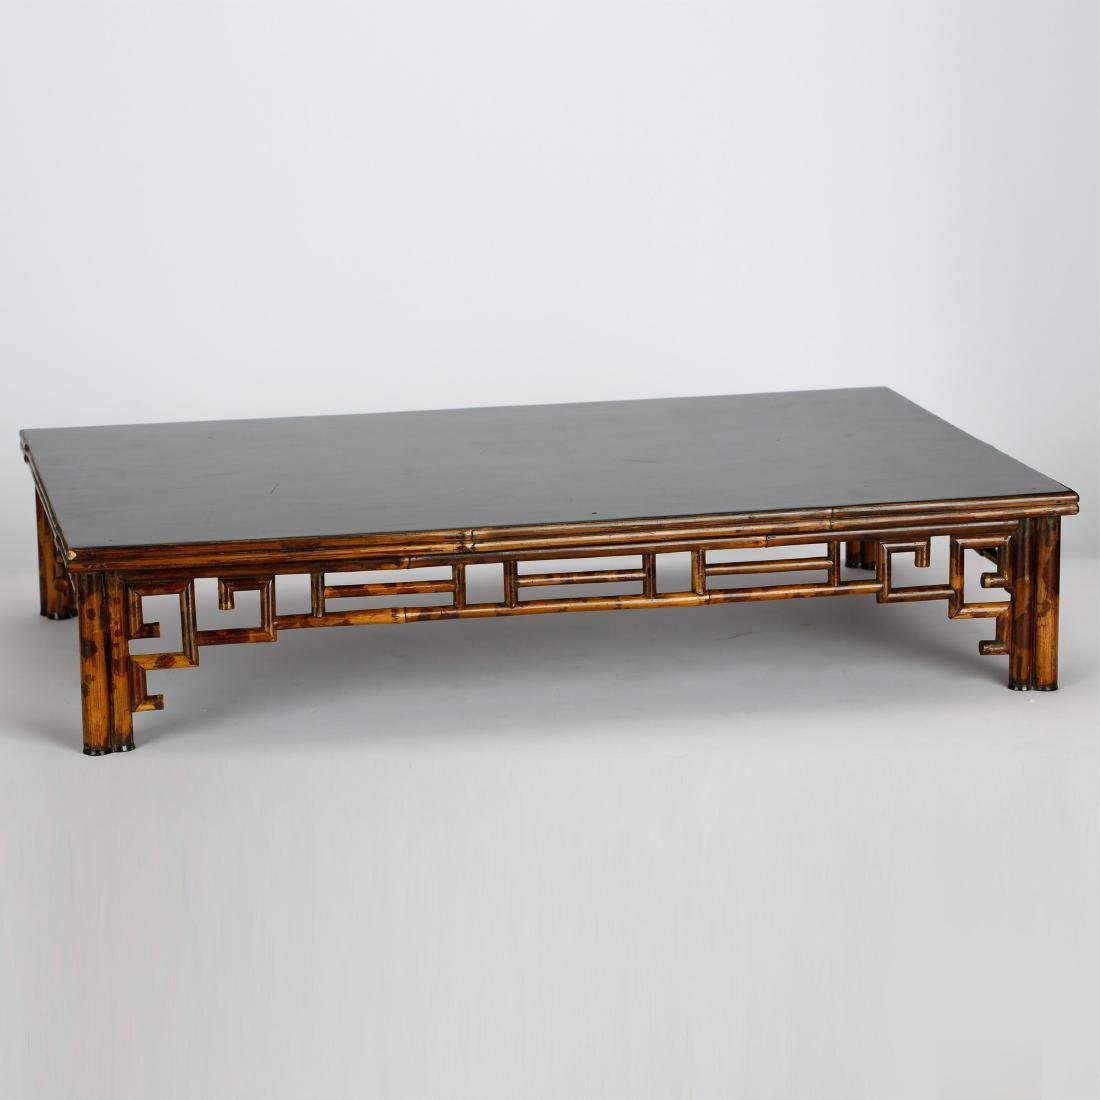 CHINESE BAMBOO LOW TABLE